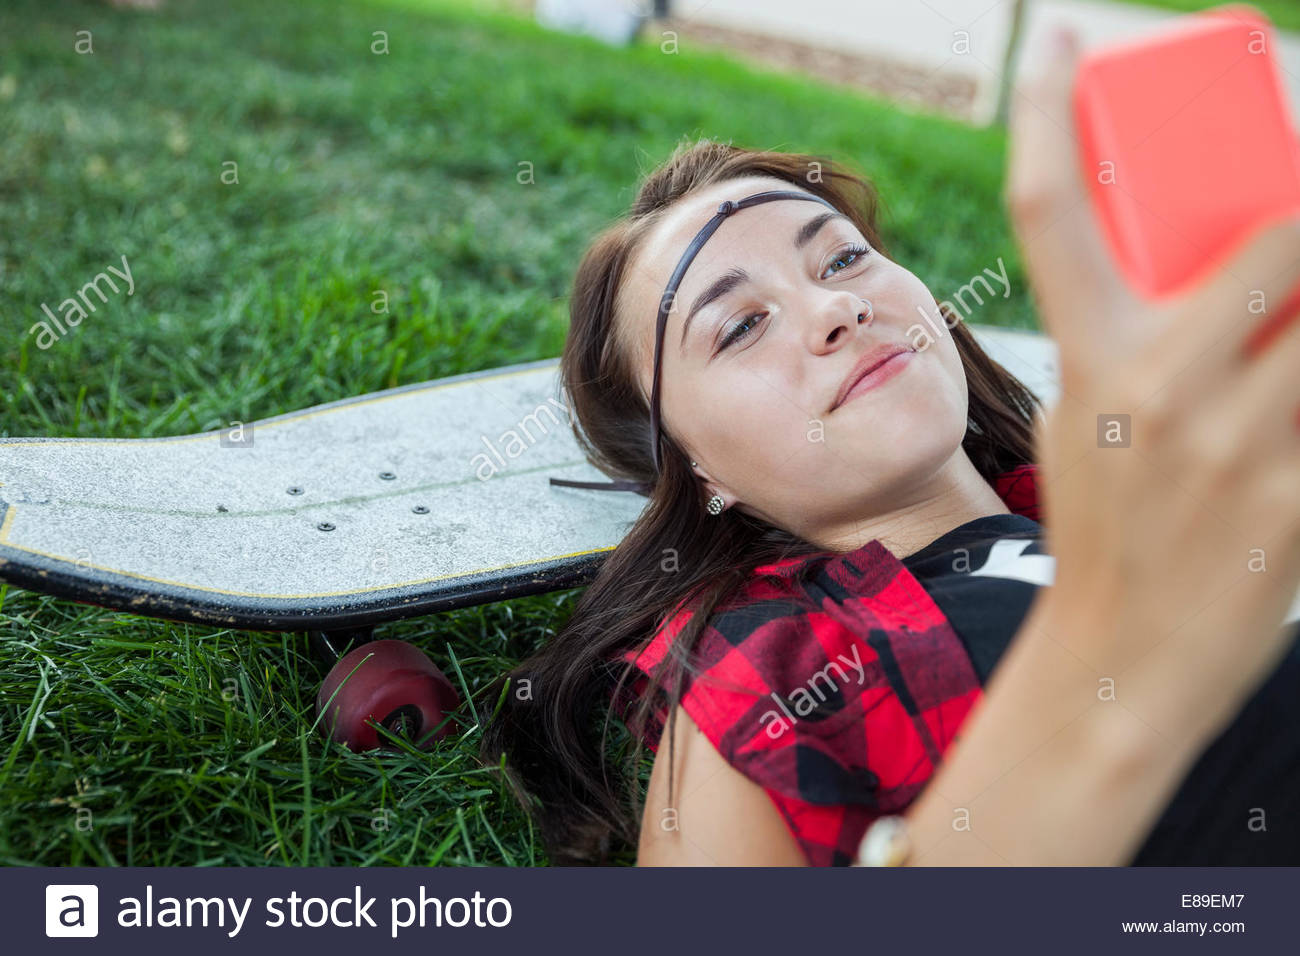 Teenage girl with cell phone laying on skateboard Stock Photo